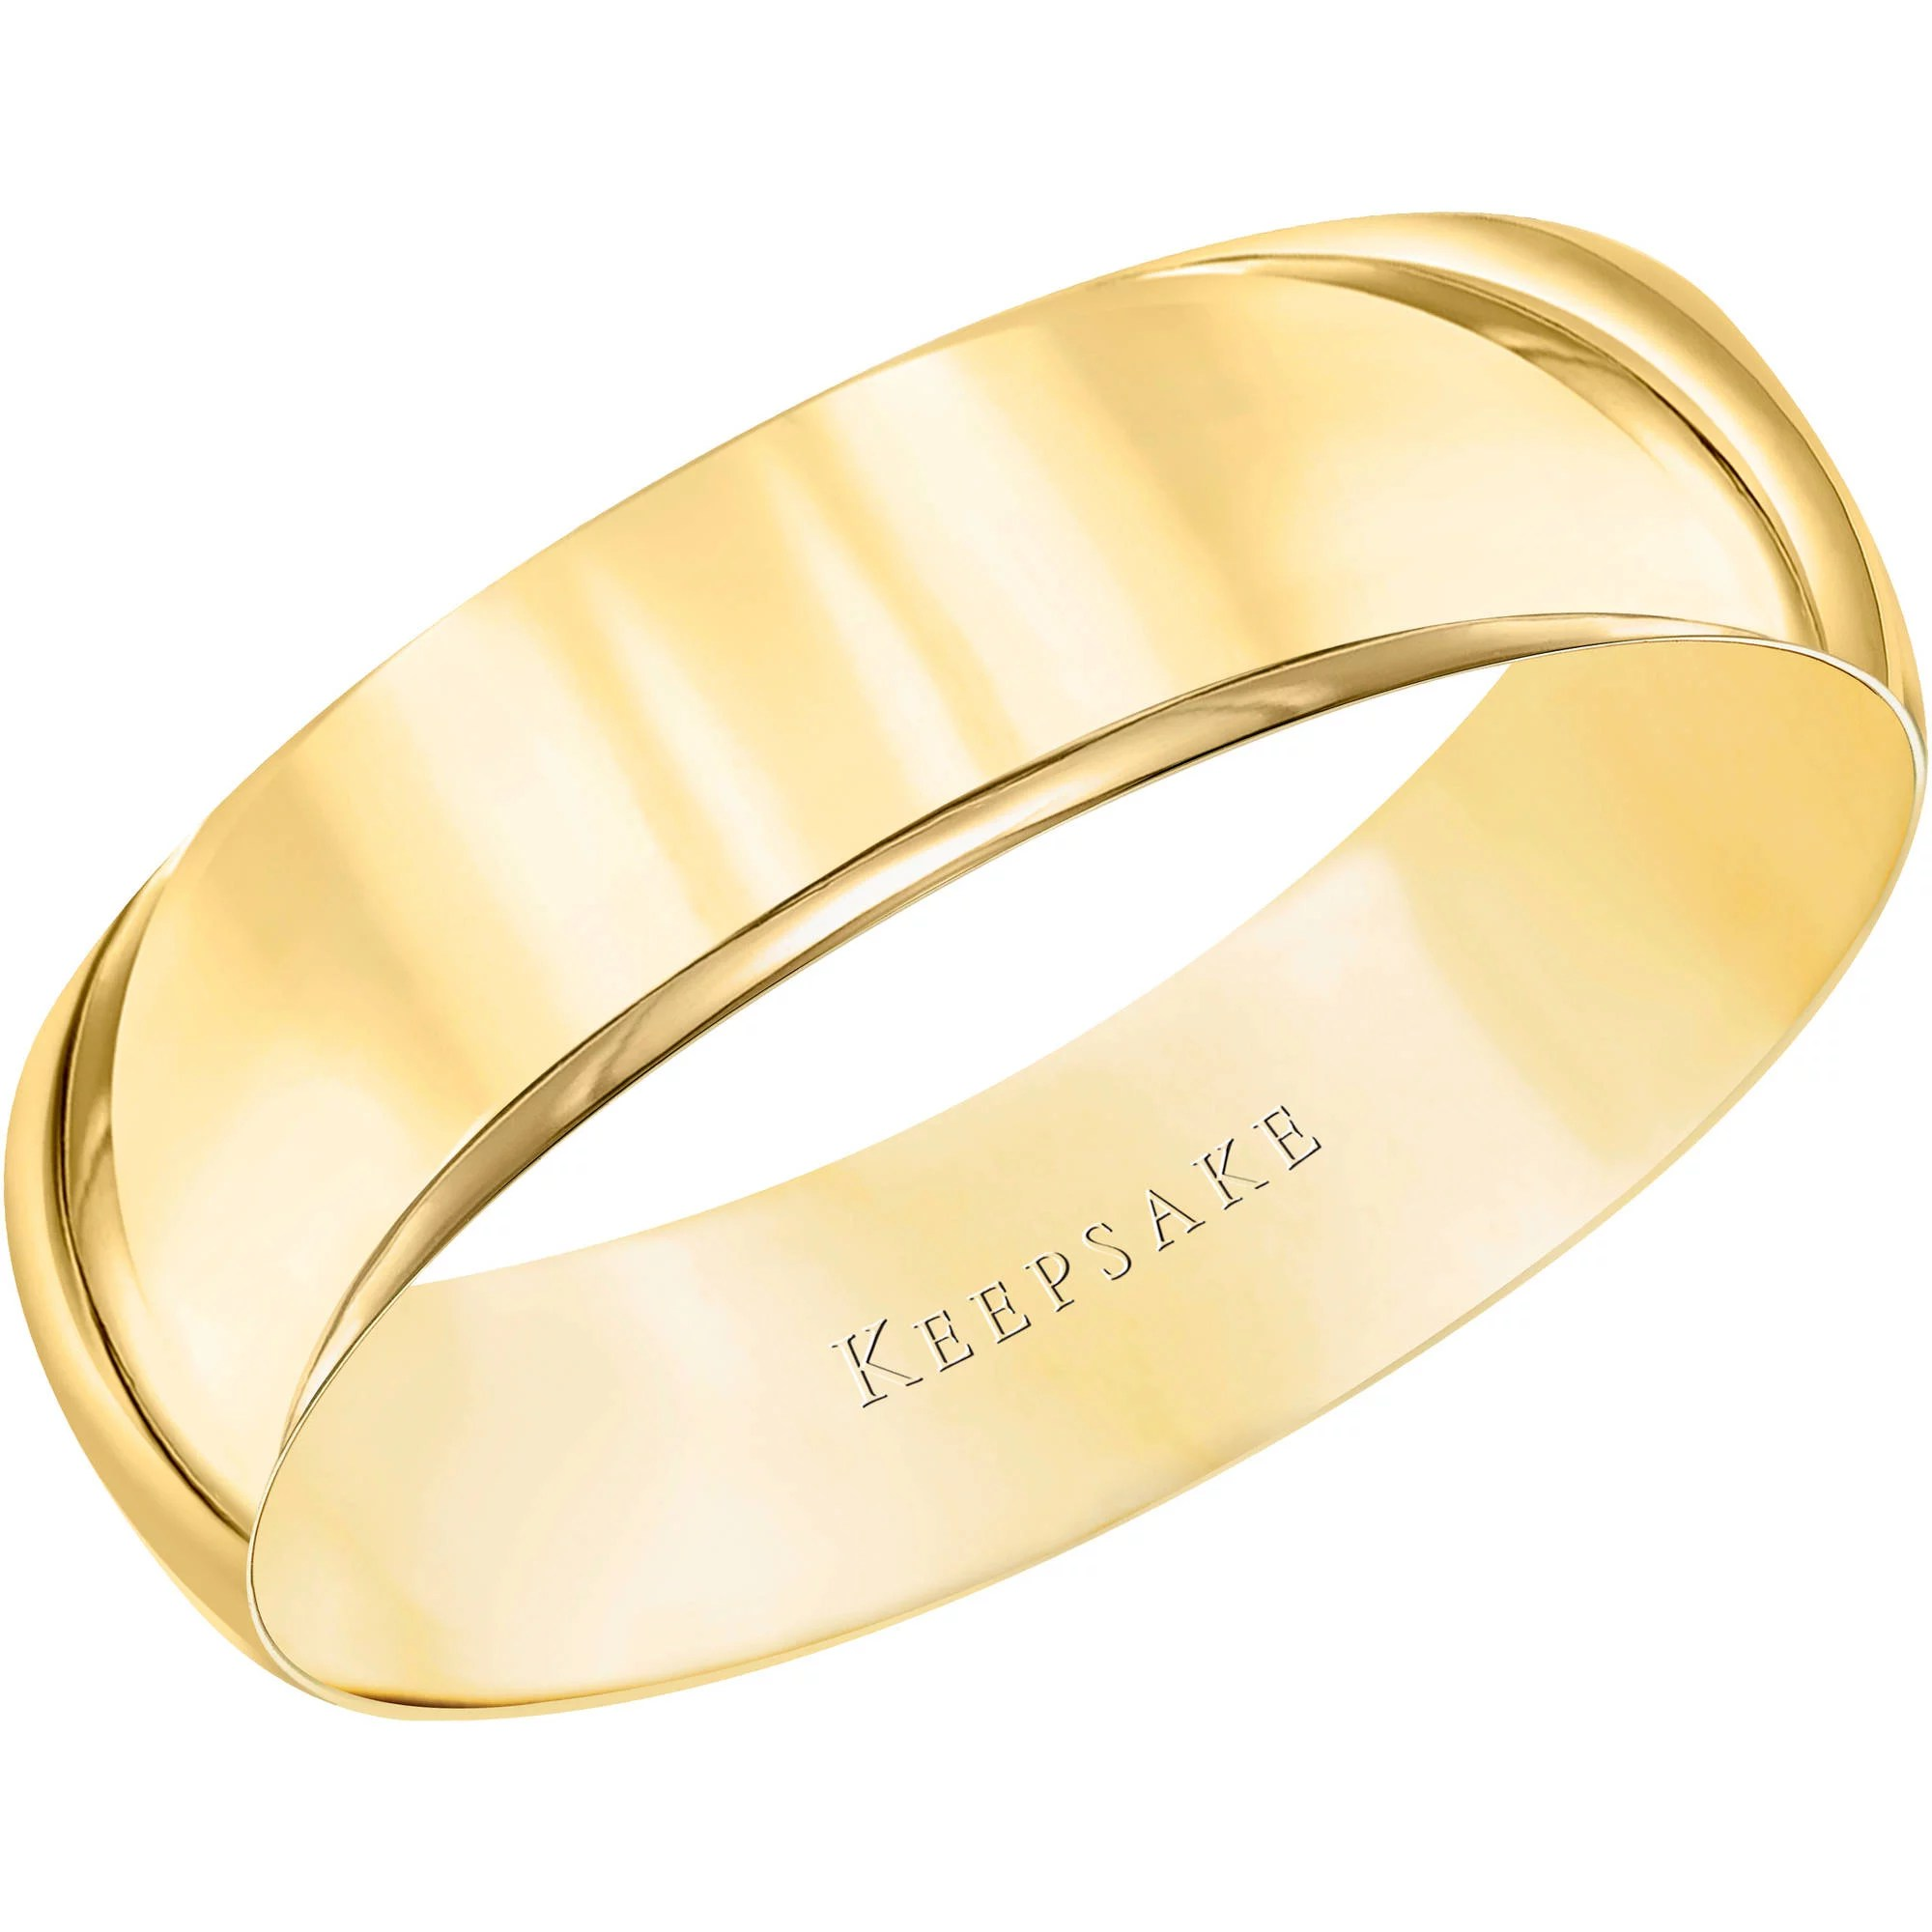 mens country wedding bands Keepsake 10kt Yellow Gold Wedding Band With High Polish Finish 5mm